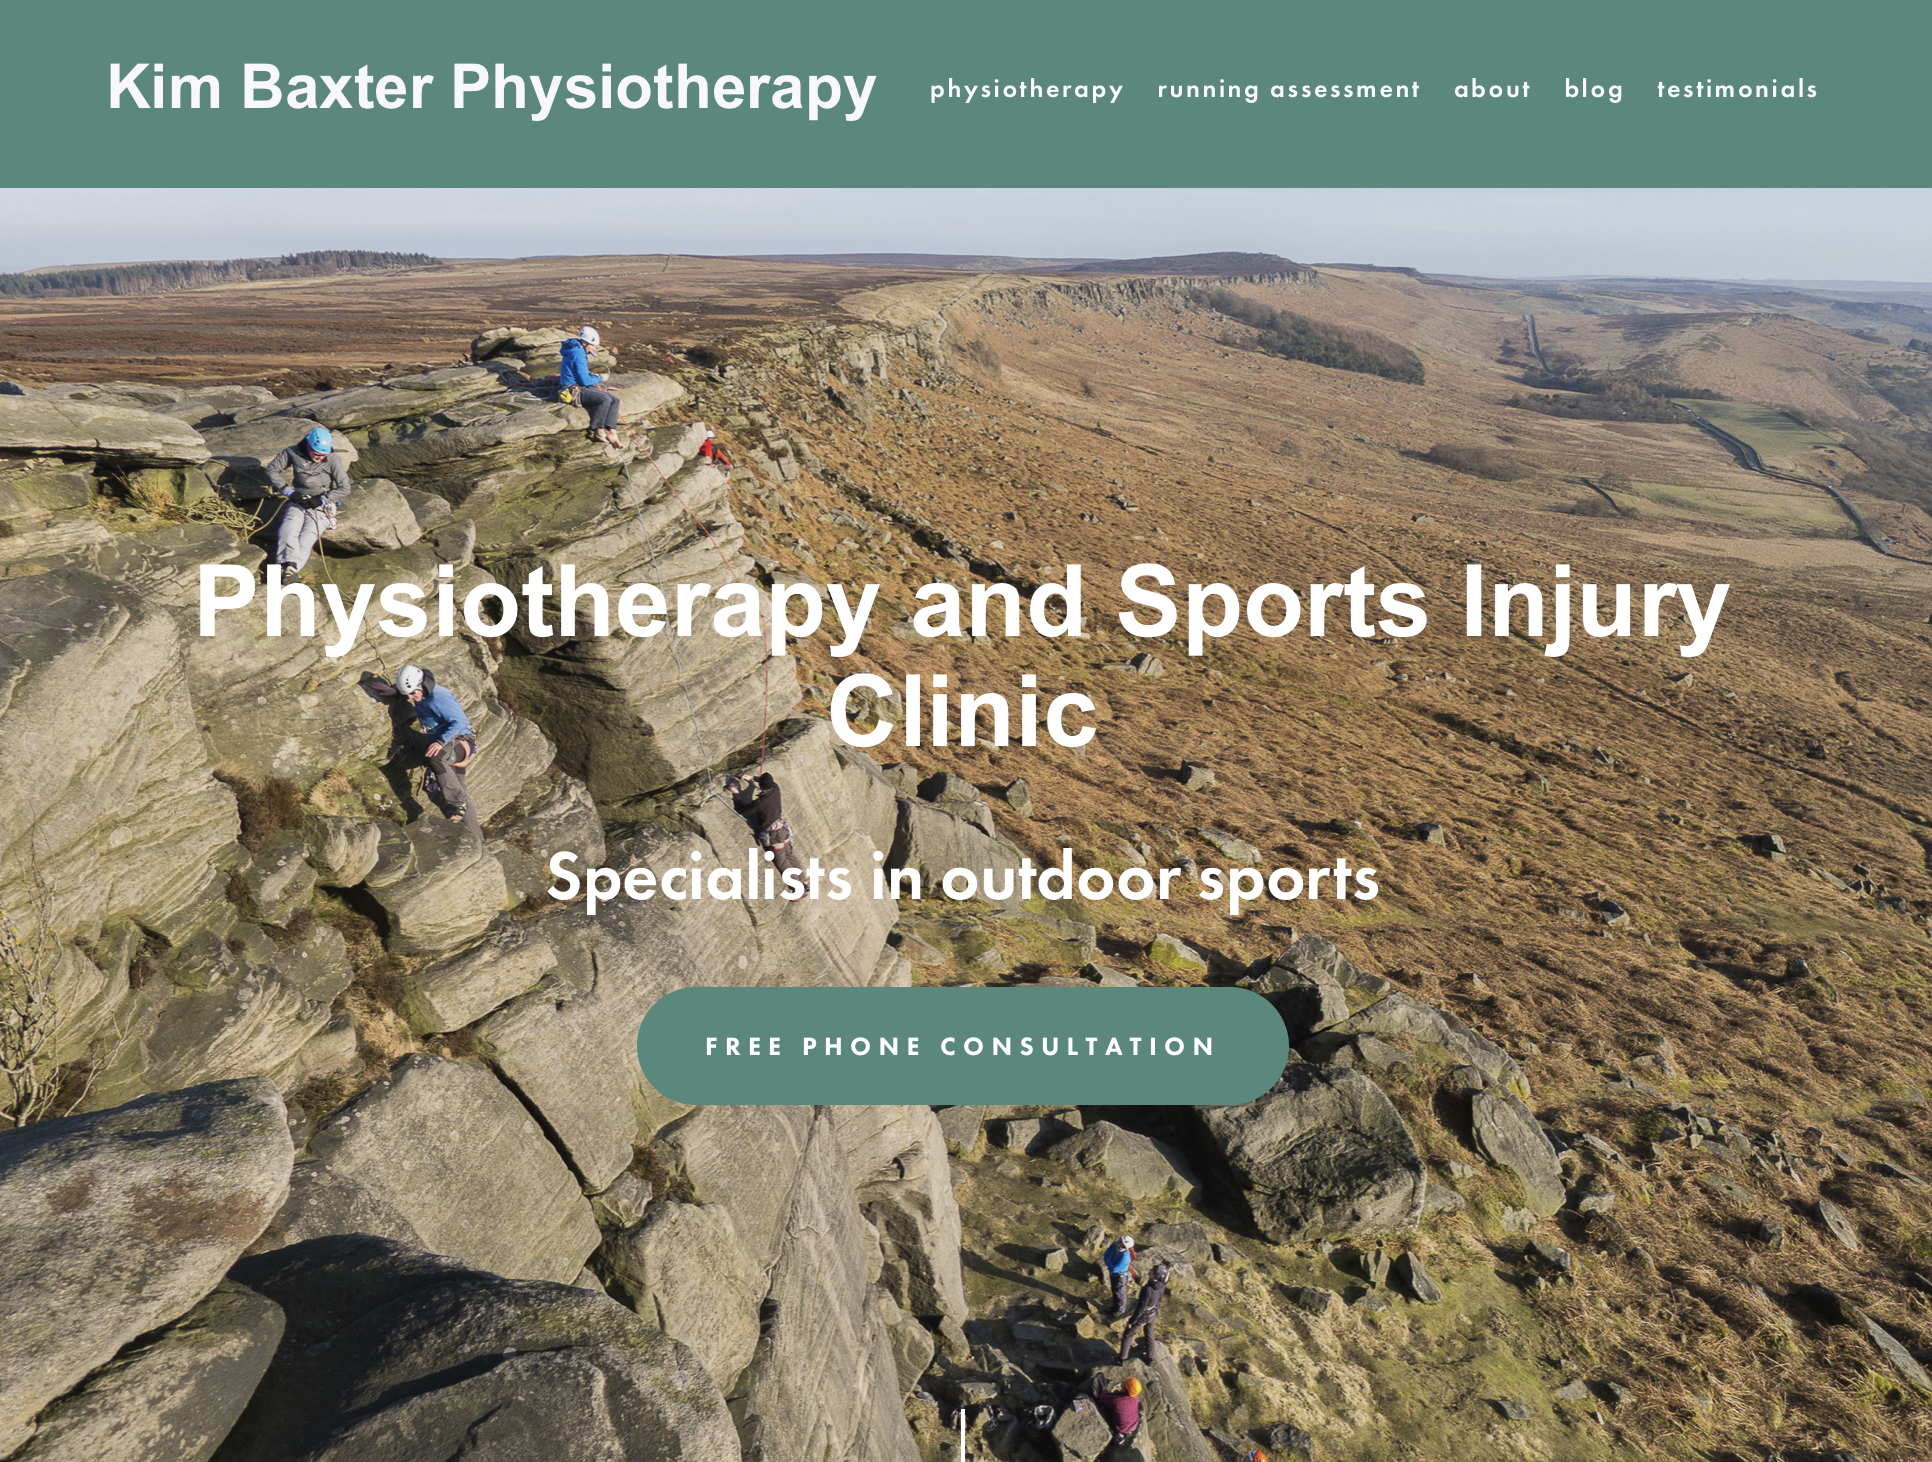 Kim Baxter - Kim wanted a new site with a more modern feel. The key requirement were that it would work well on mobiles, and would also convey the key messages for her physiotherapy business without the content becoming too lengthy. I used Squarespace to build the site and focused the content on the key questions that a new client would have.